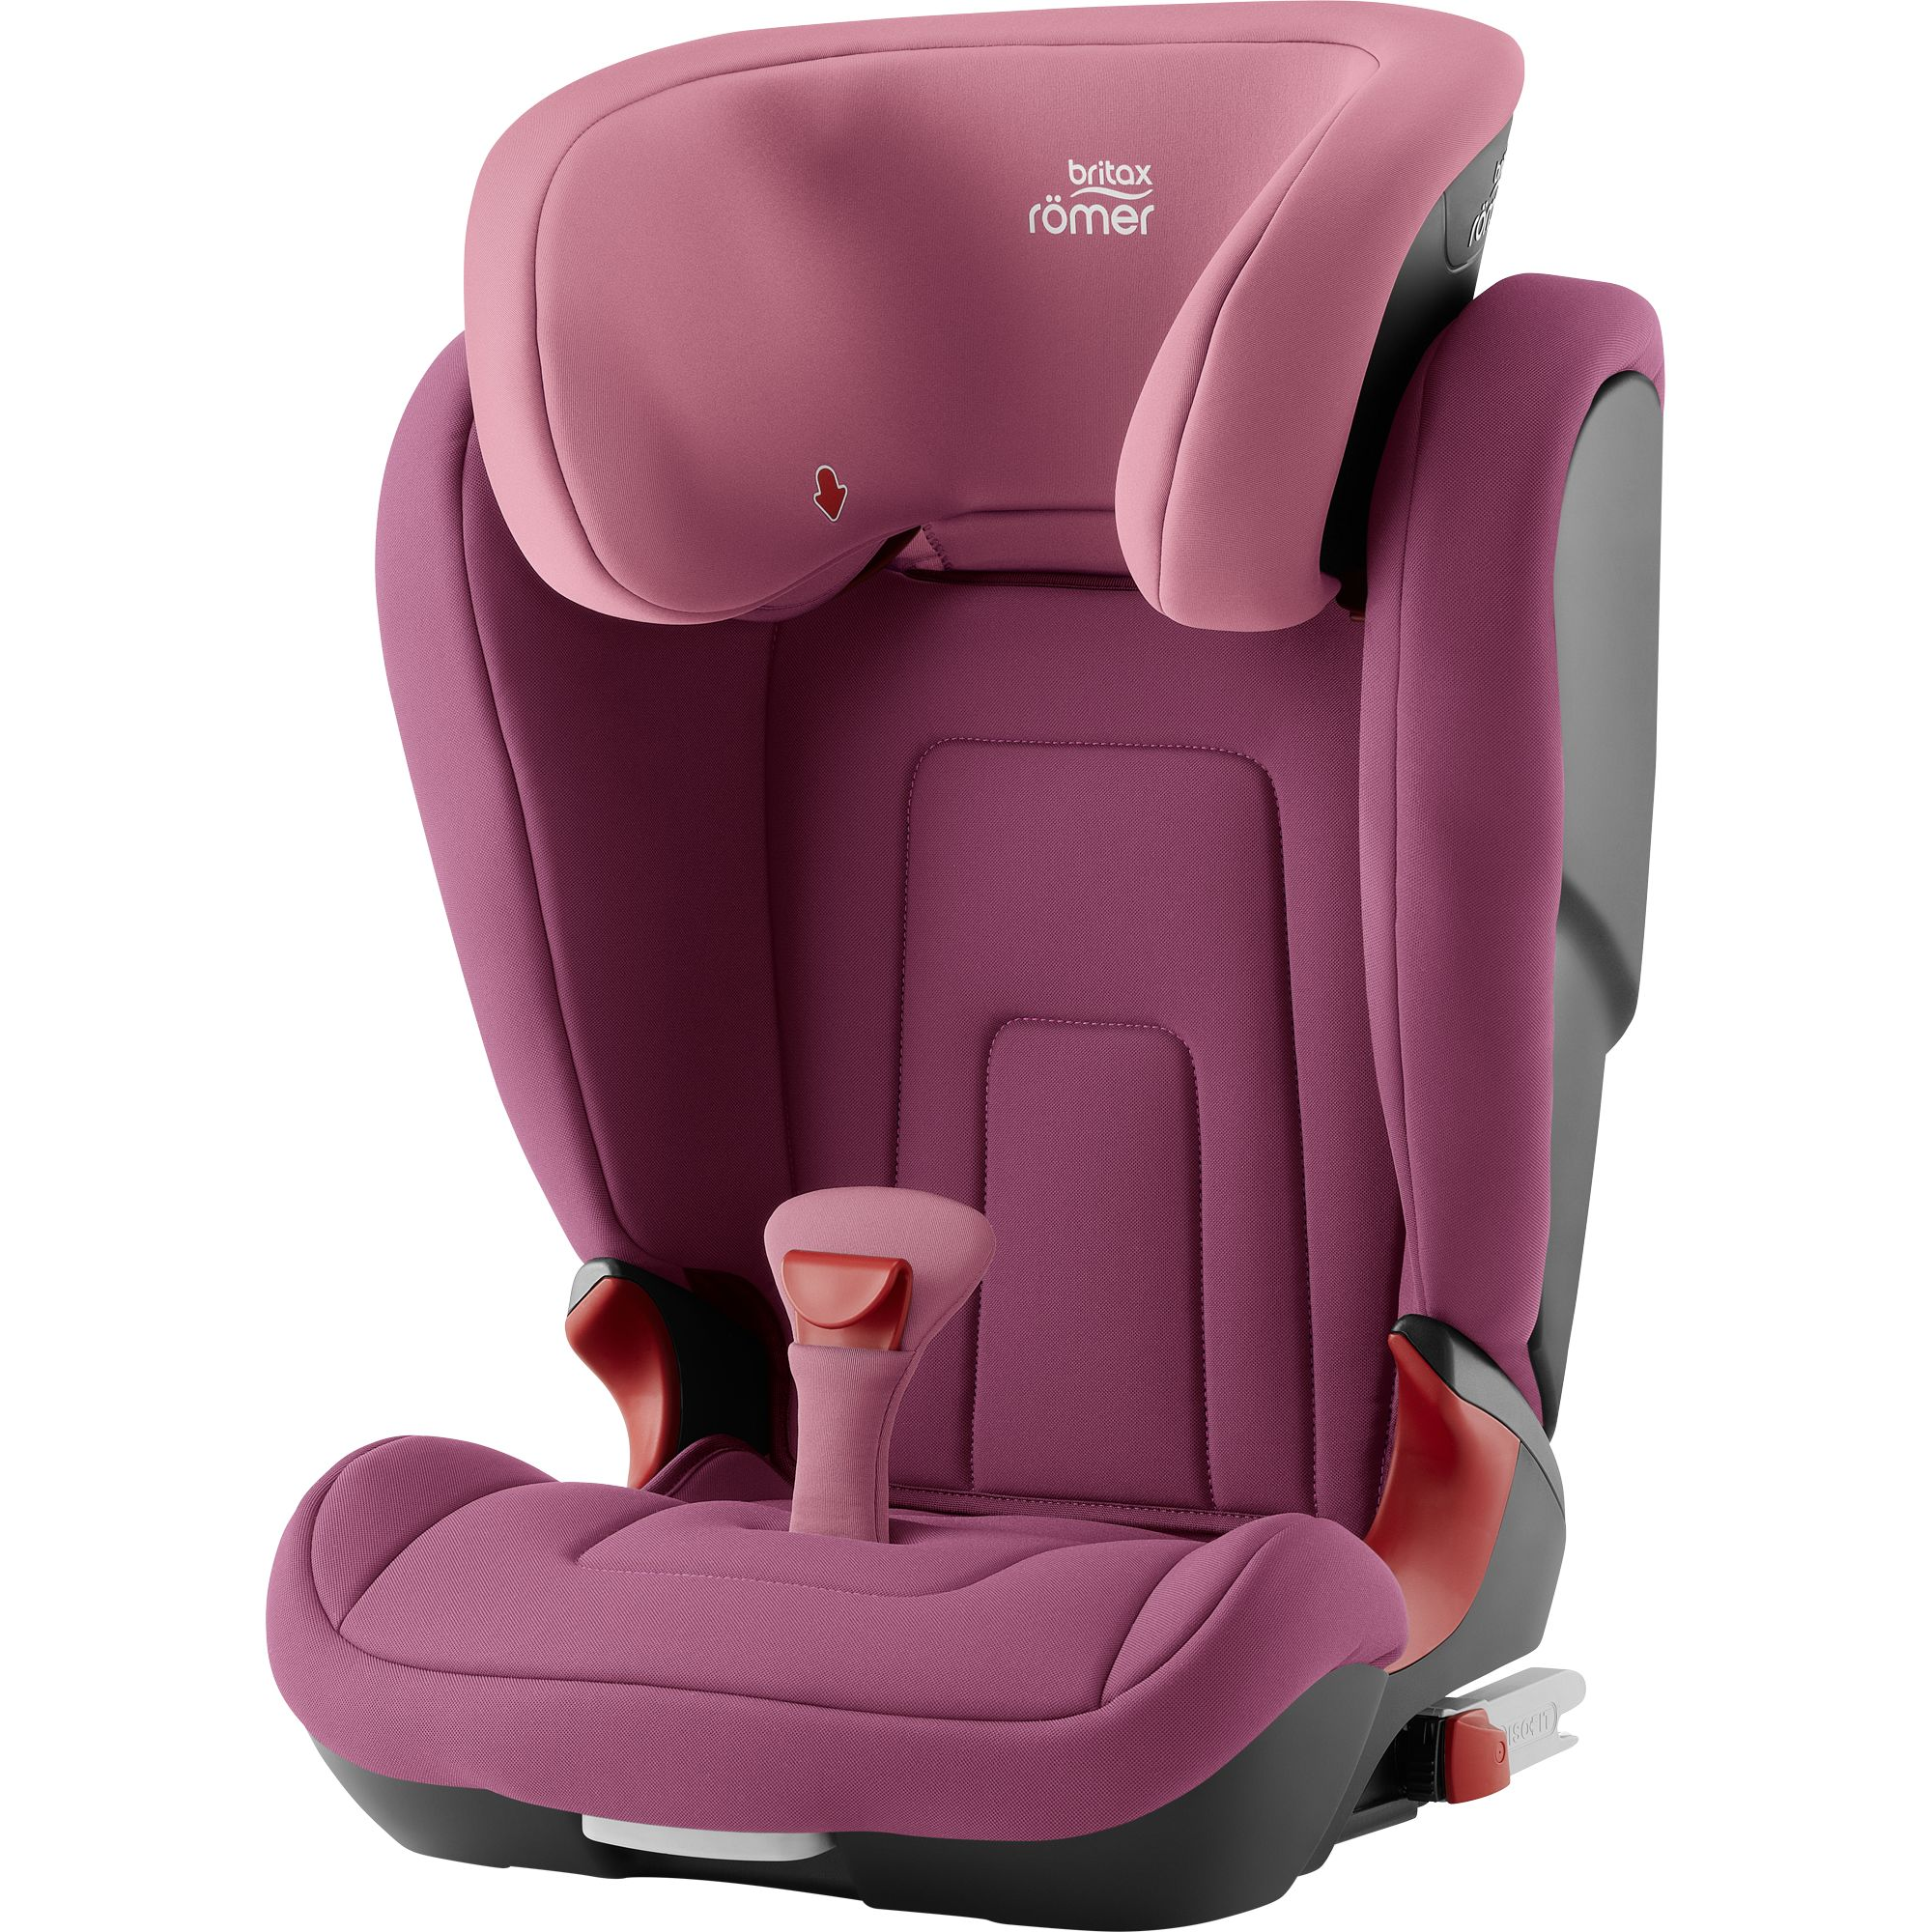 ROMER Kidfix 2 R Wine Rose 2020